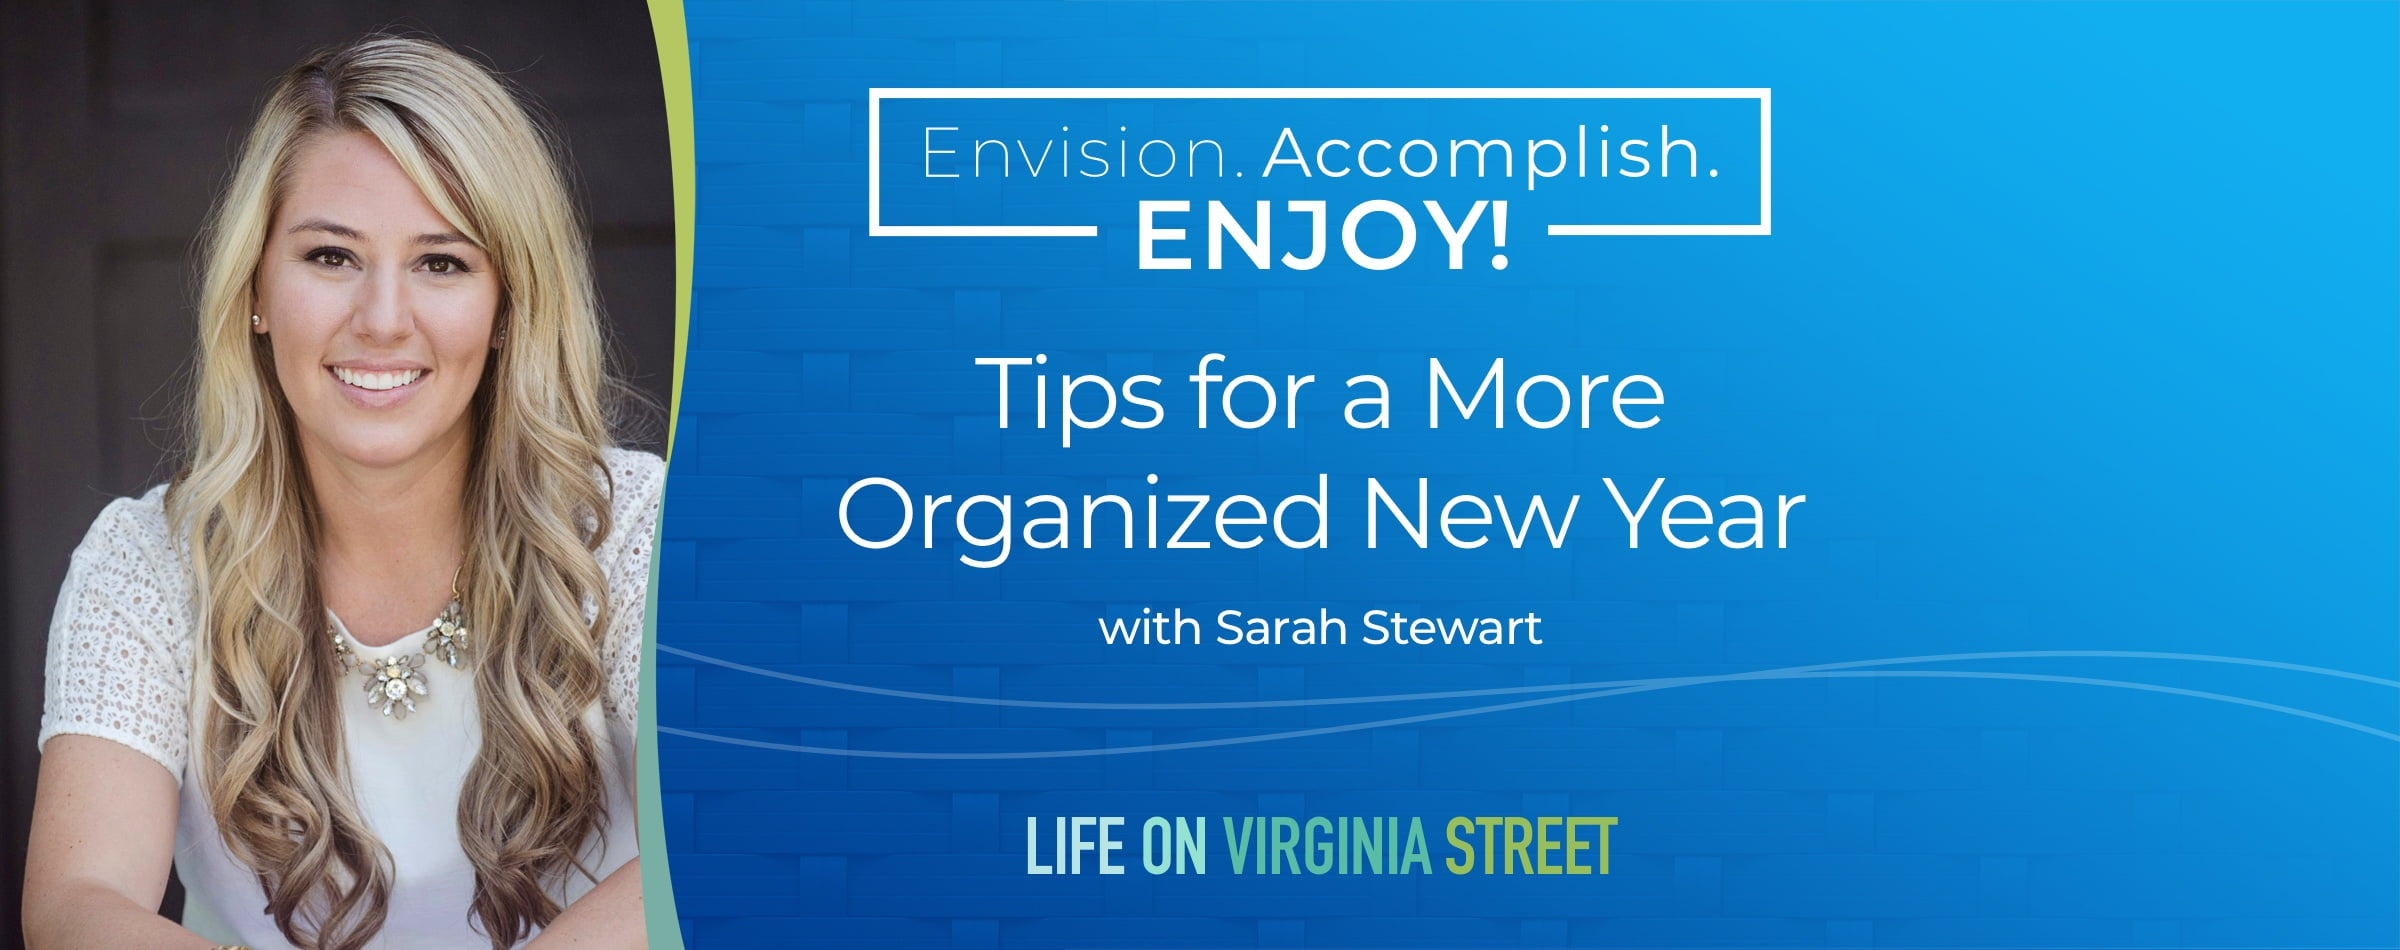 Tips for a More Organized New year